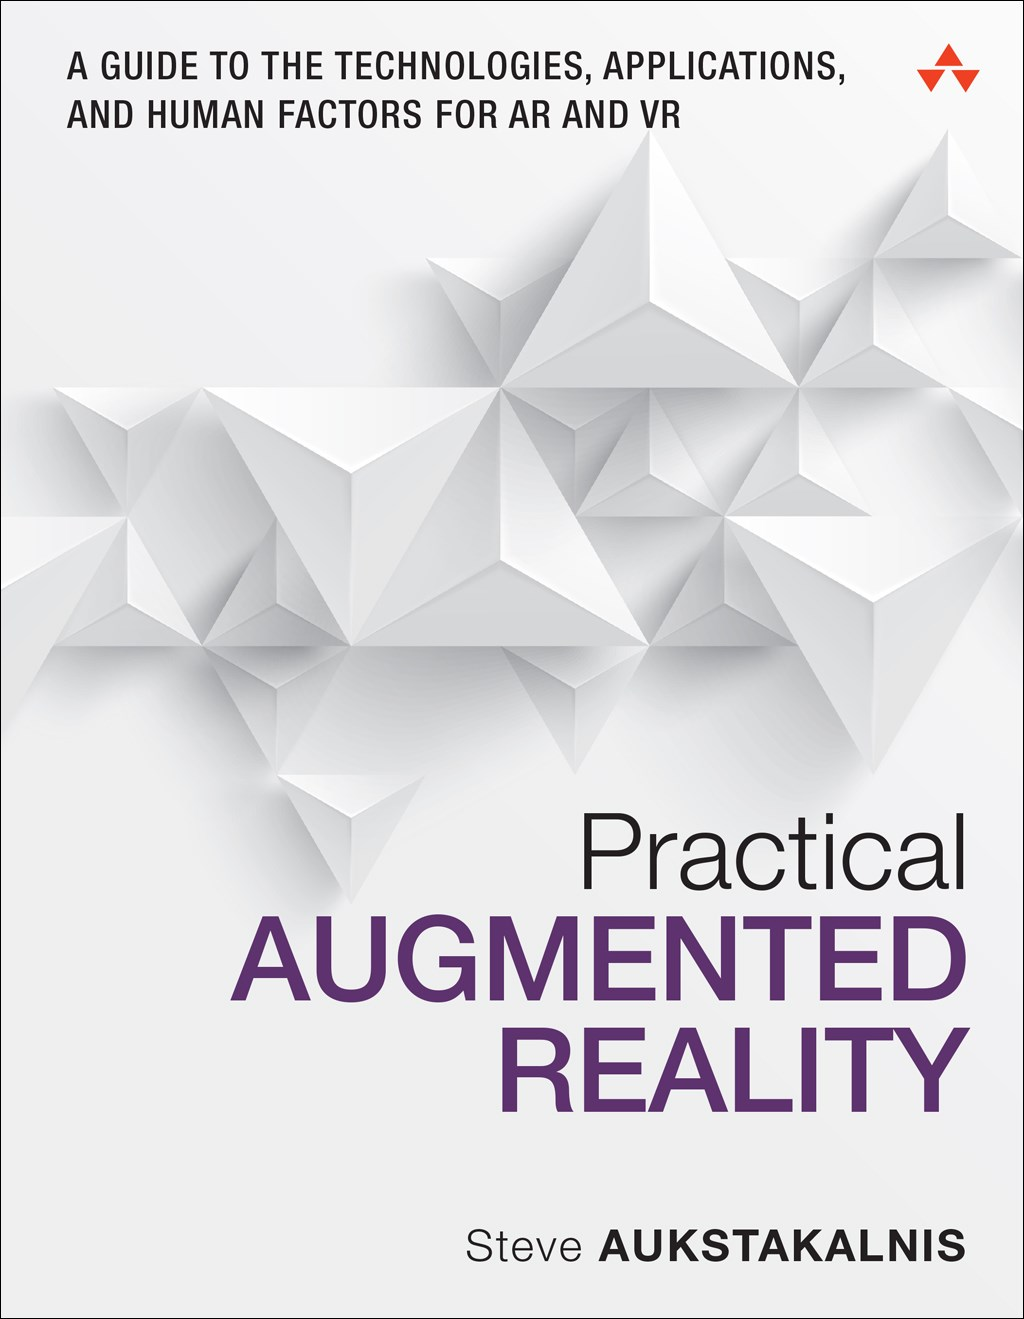 Practical Augmented Reality: A Guide to the Technologies, Applications, and Human Factors for AR and VR